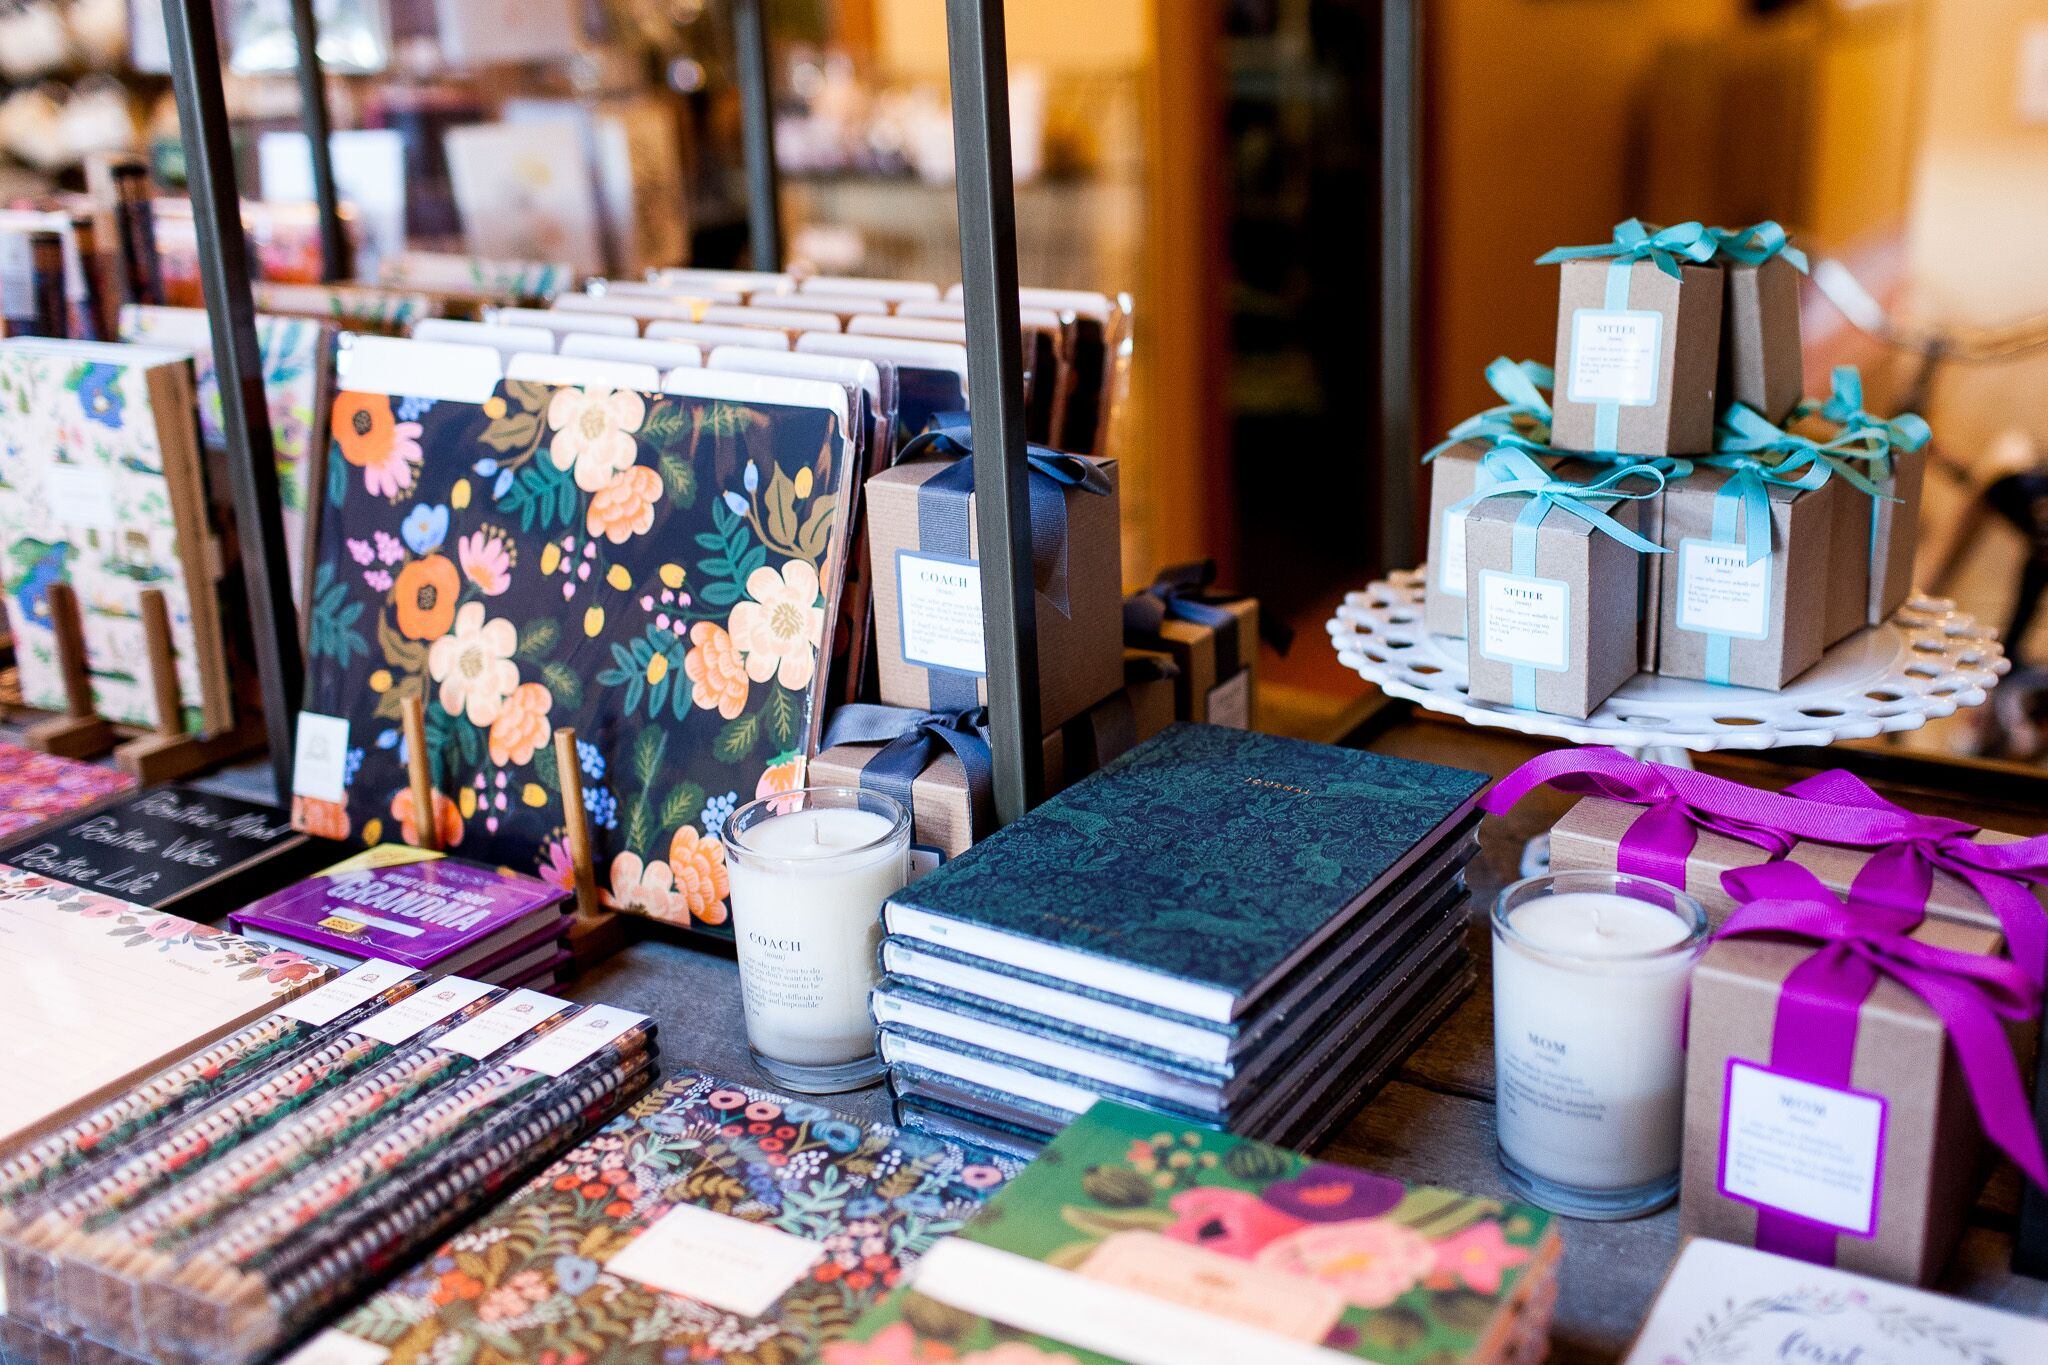 Rifle Paper Co. is one of our favorite. Paired with an Ella B Candle it makes the perfect gift